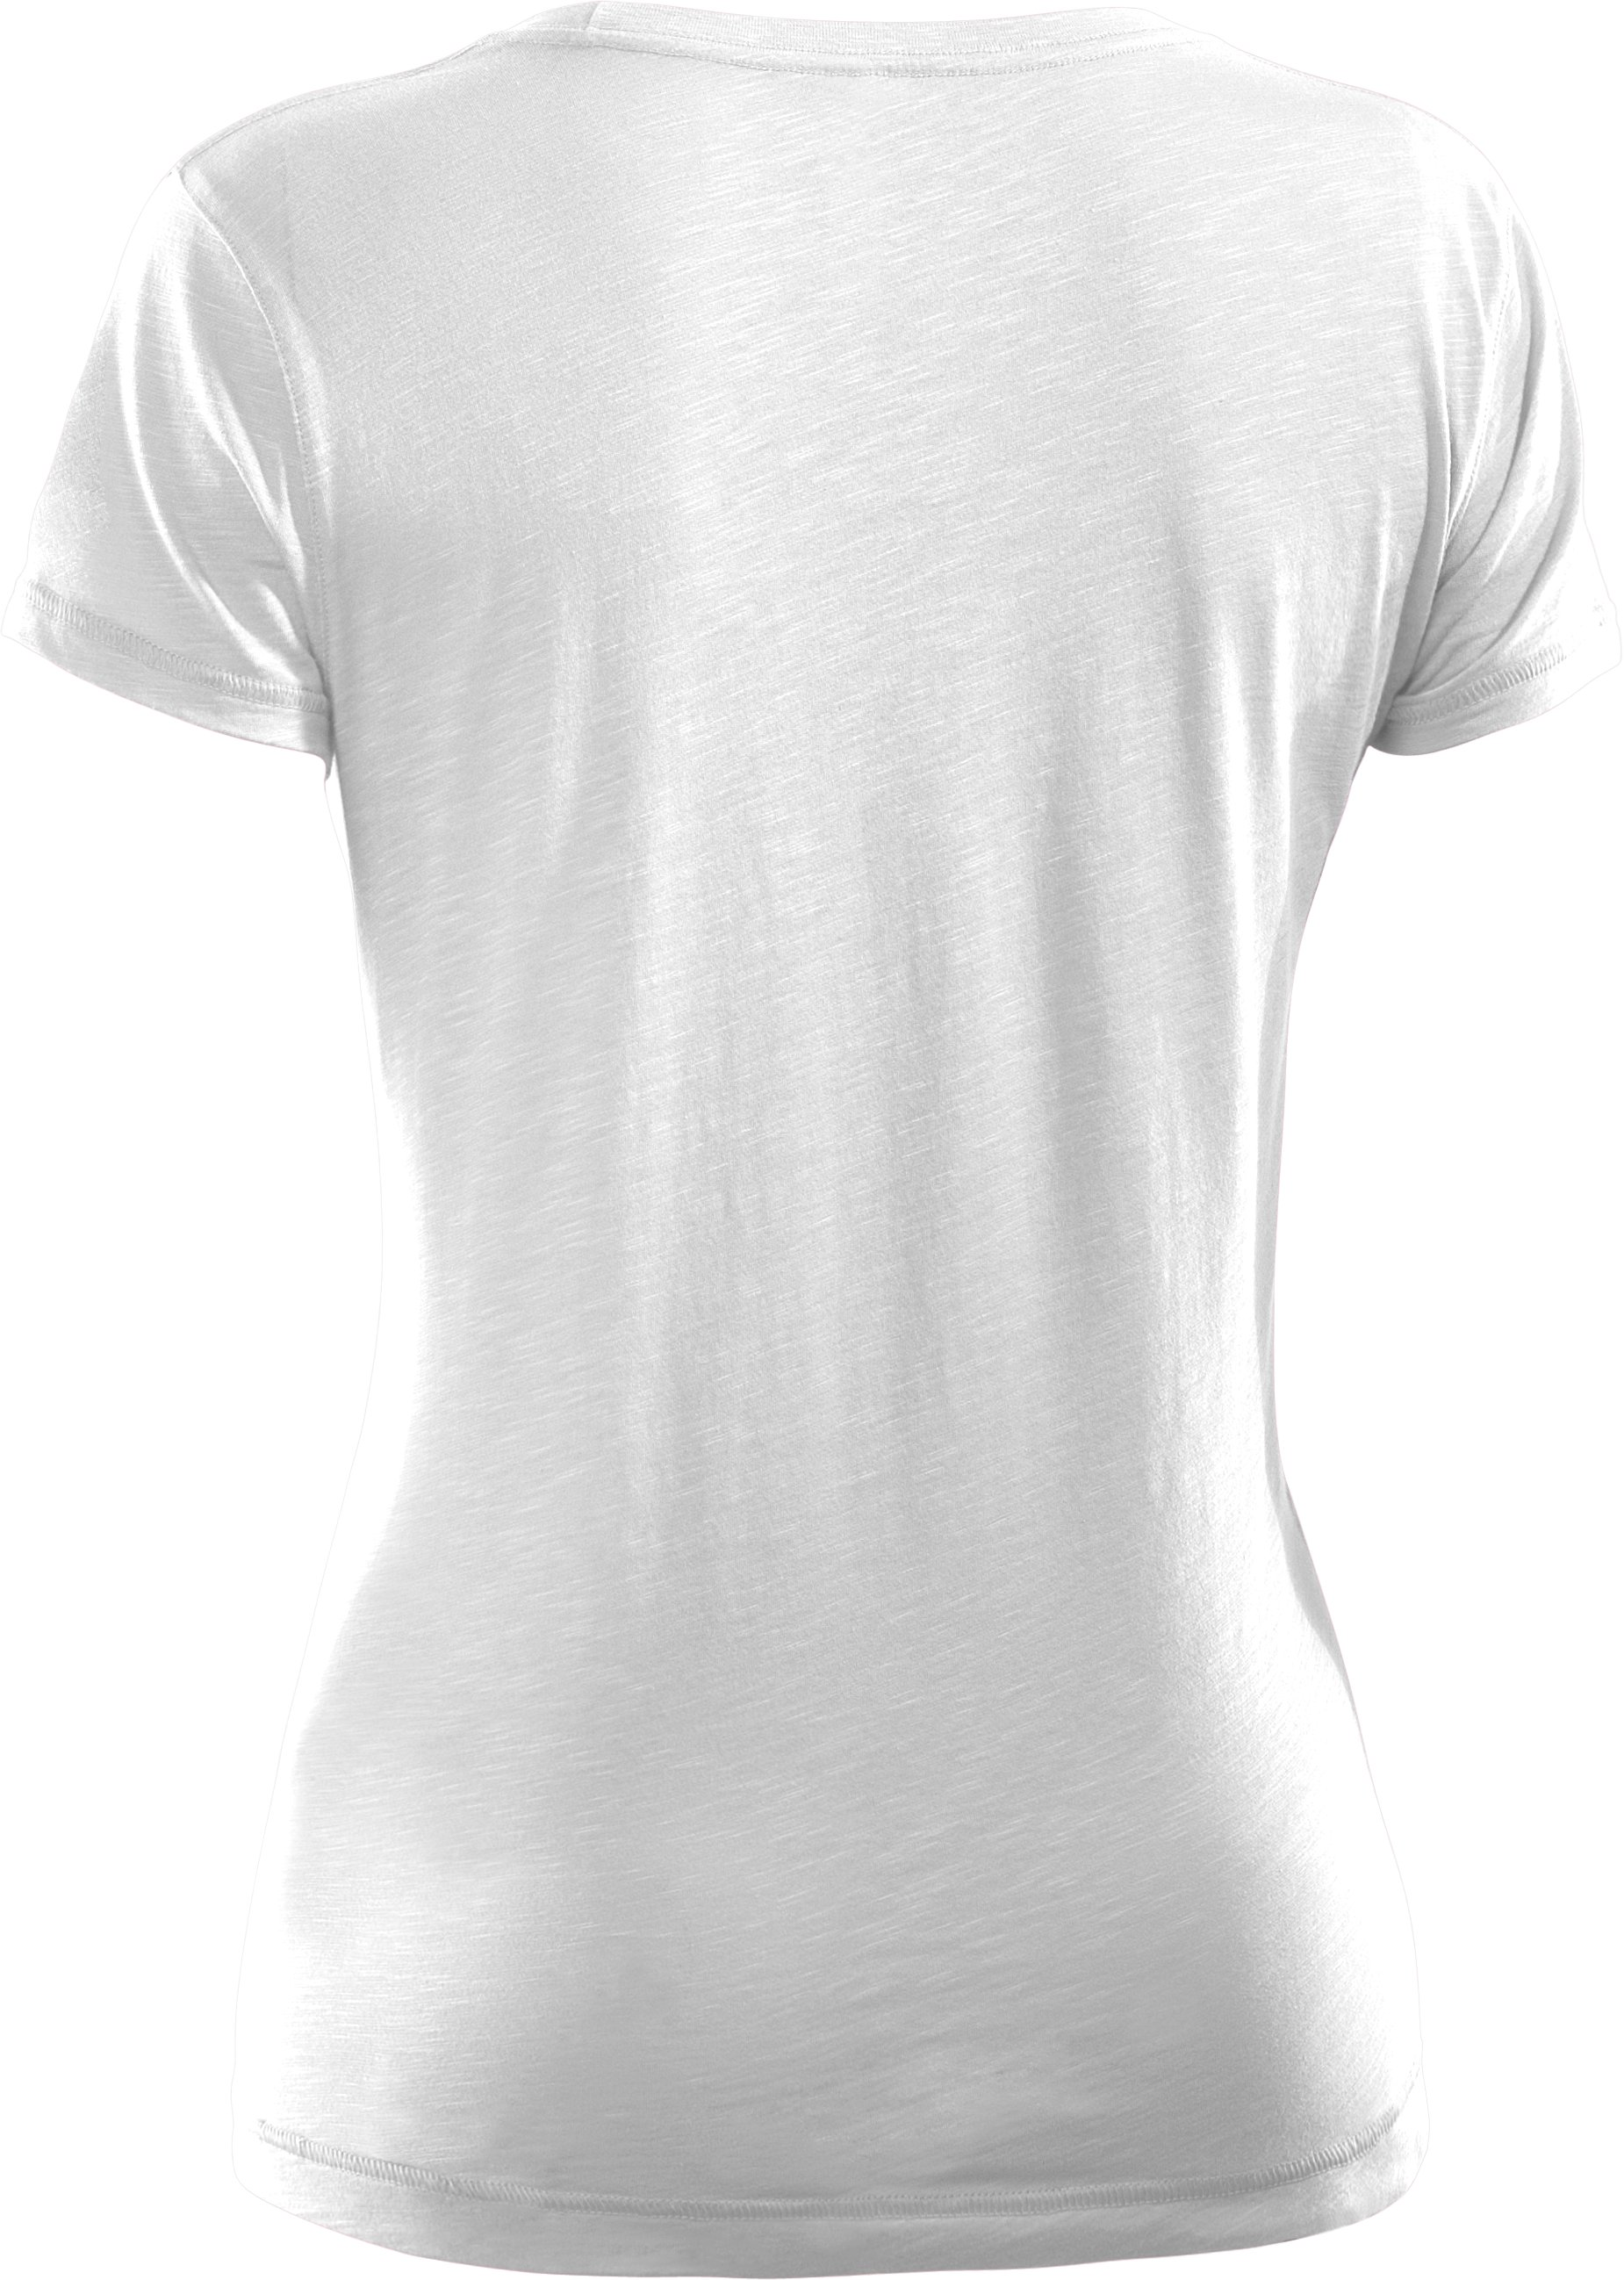 Women's Charged Cotton® Sassy Slub T-Shirt, White,